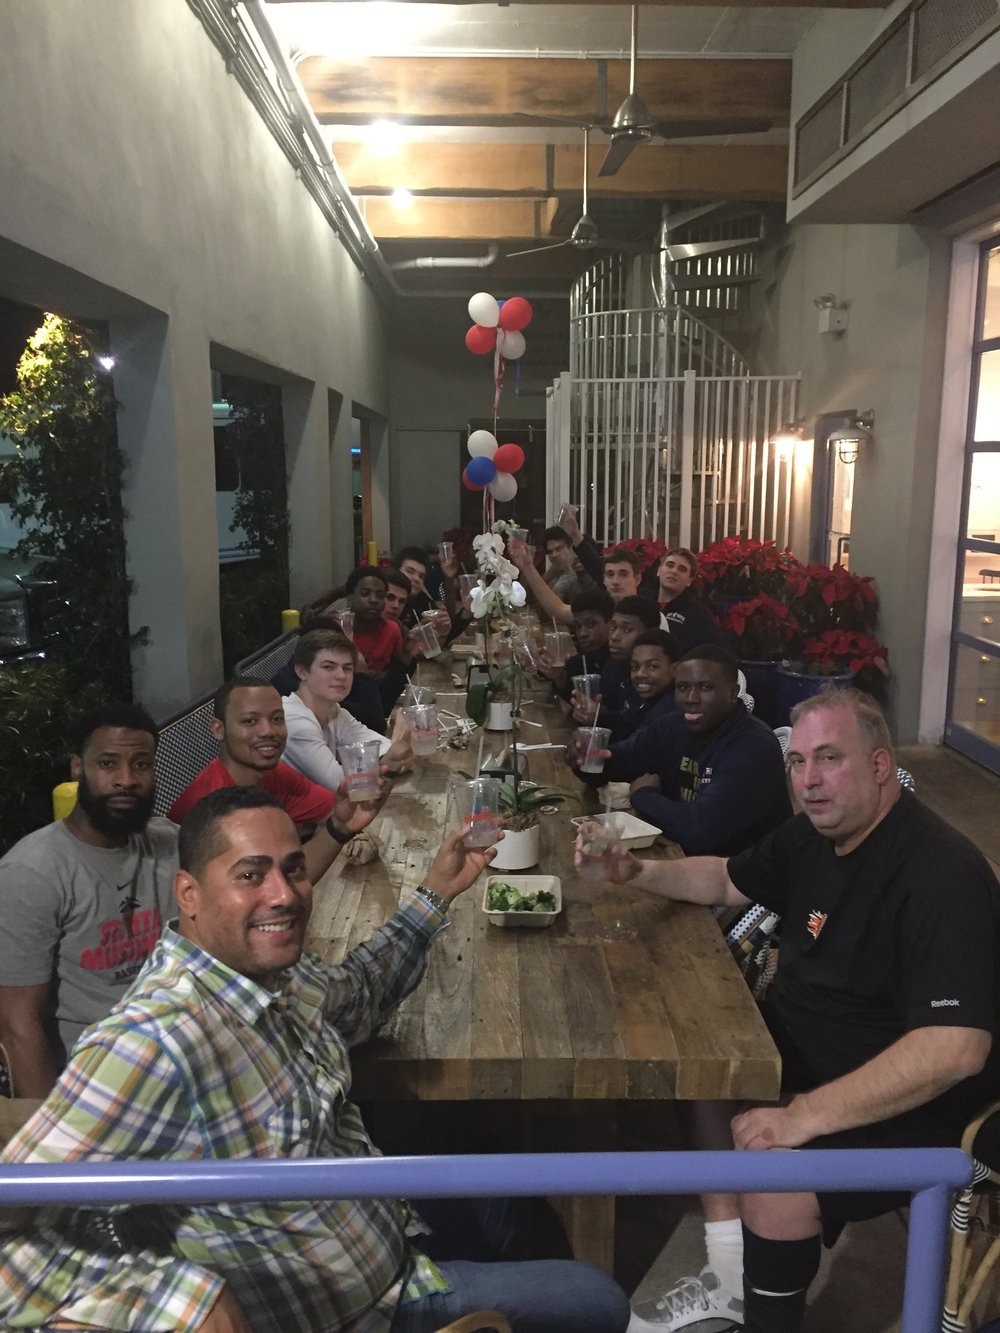 St. Rita Basketball team dinner at Ray Allen's restaurant Grown